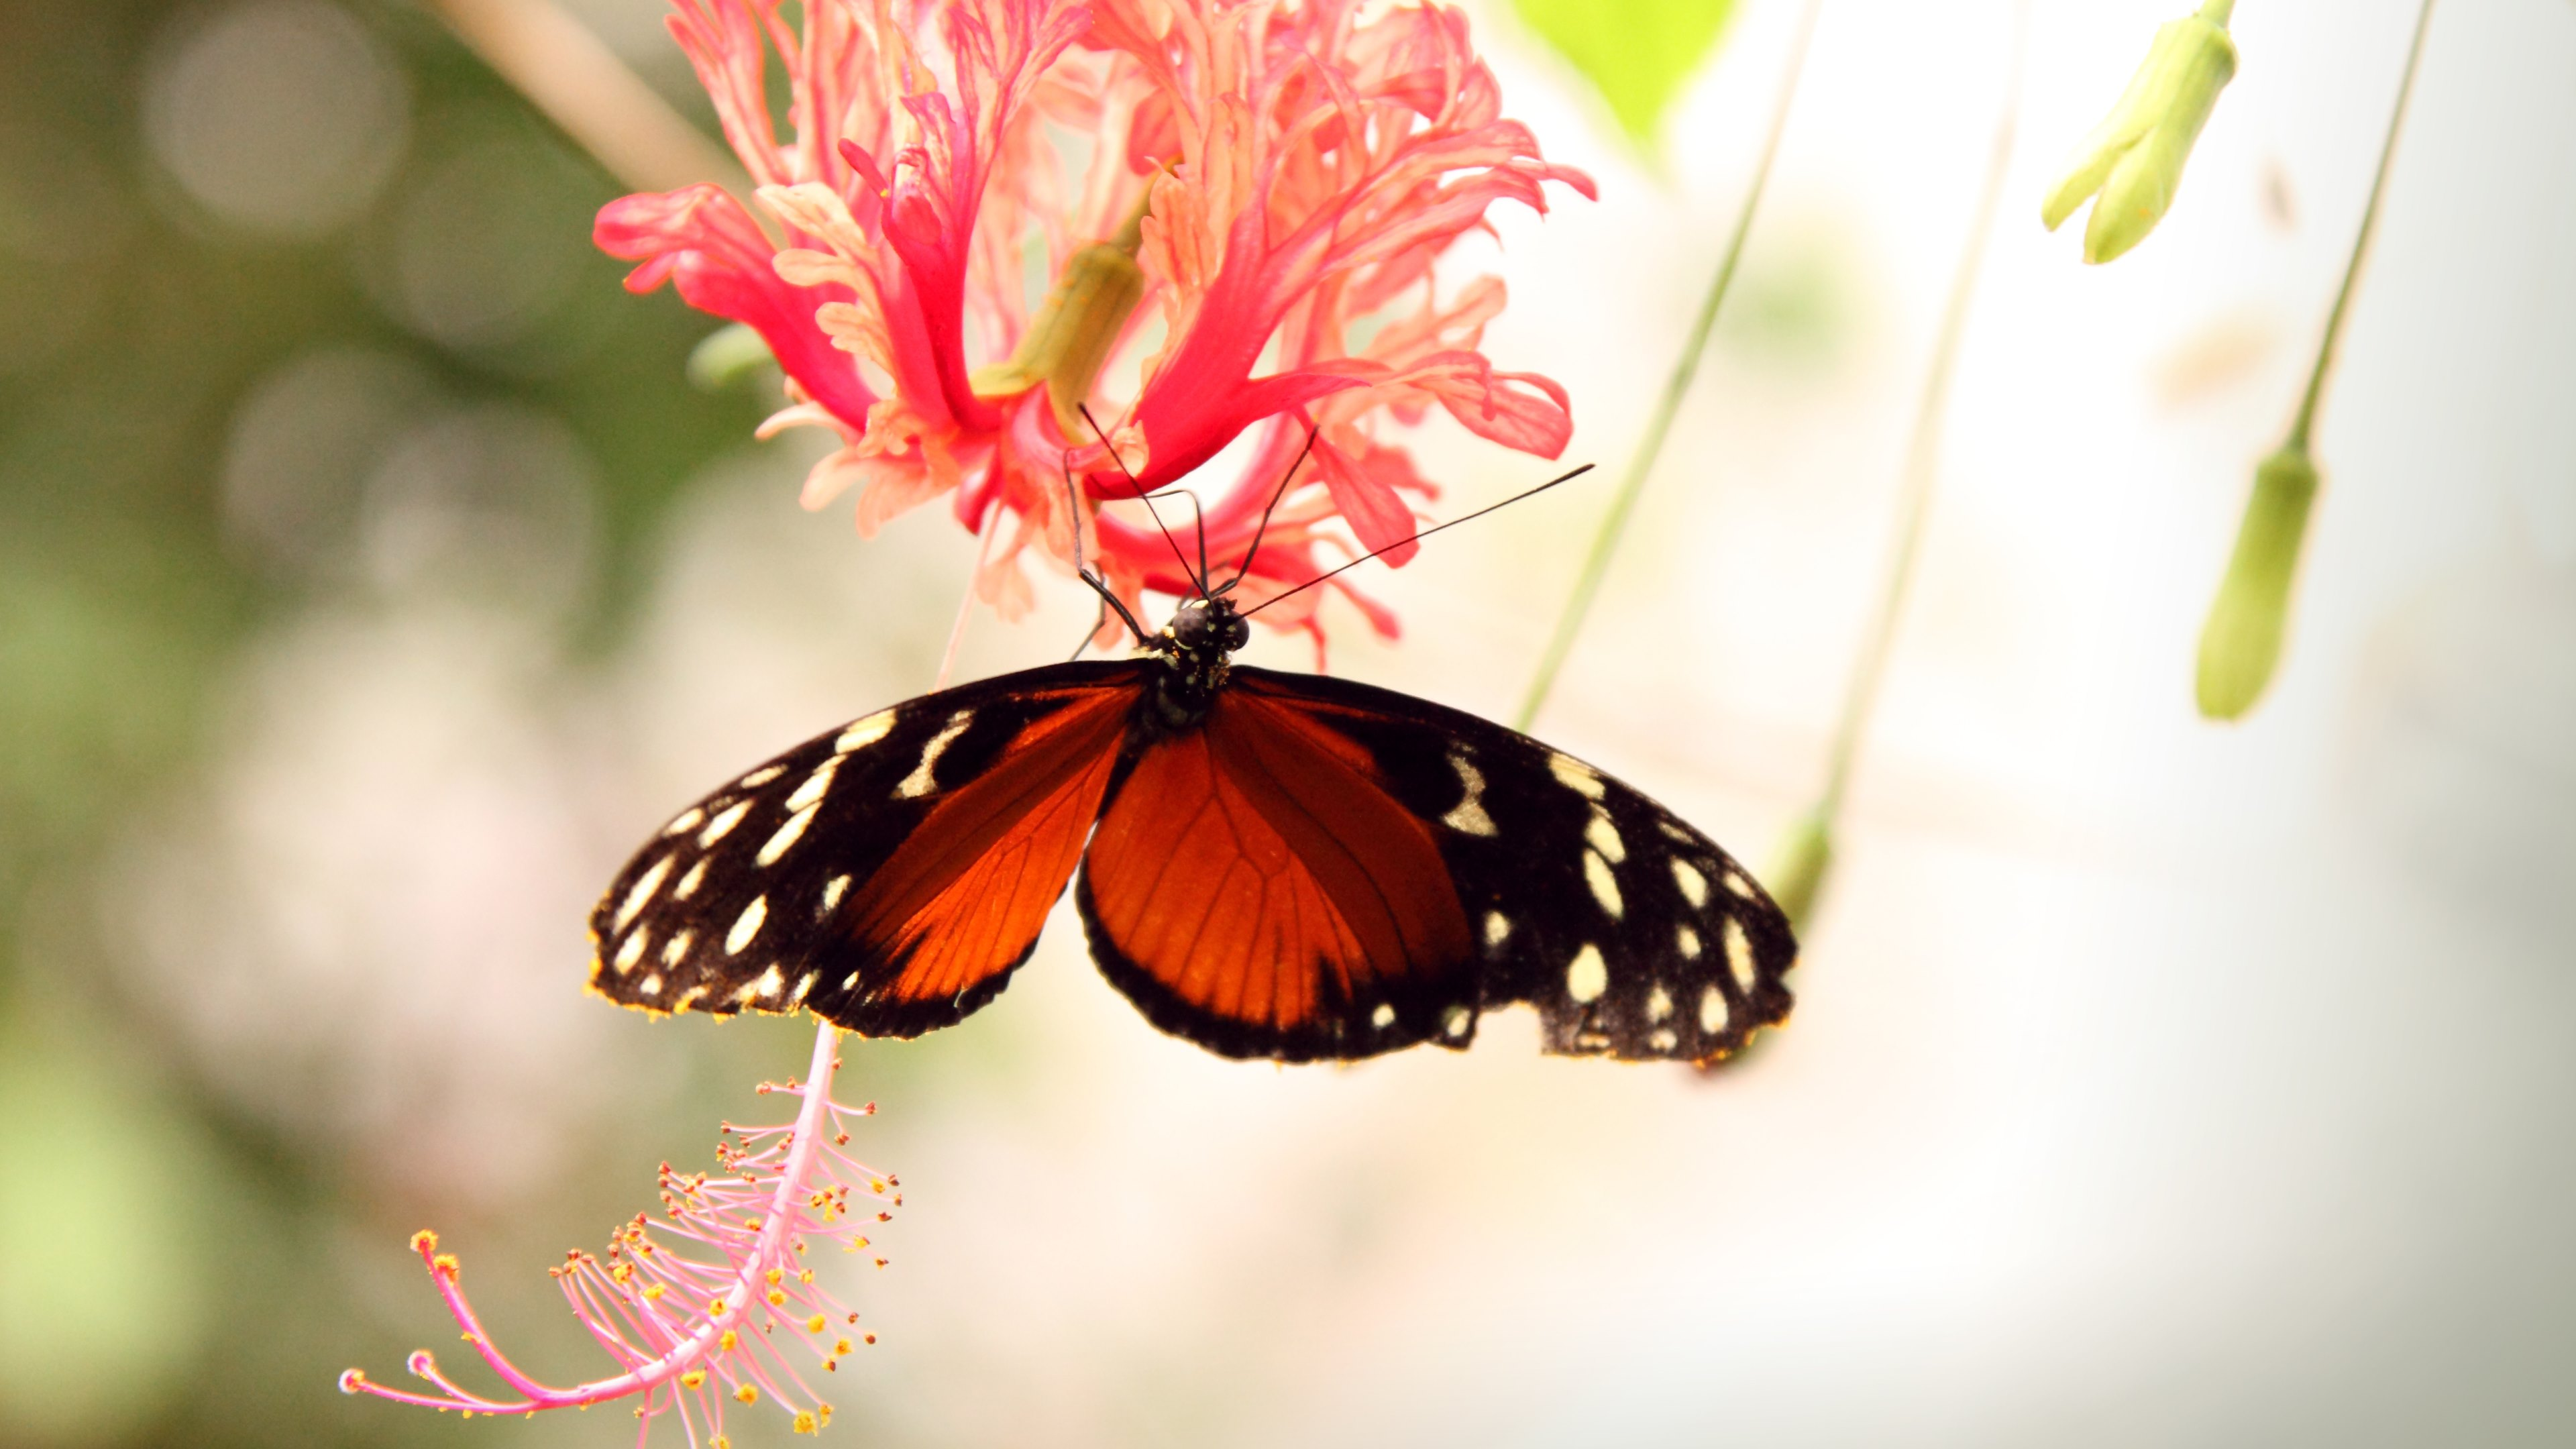 Butterflies Wallpapers Hd Download: 4K Butterfly Wallpapers High Quality